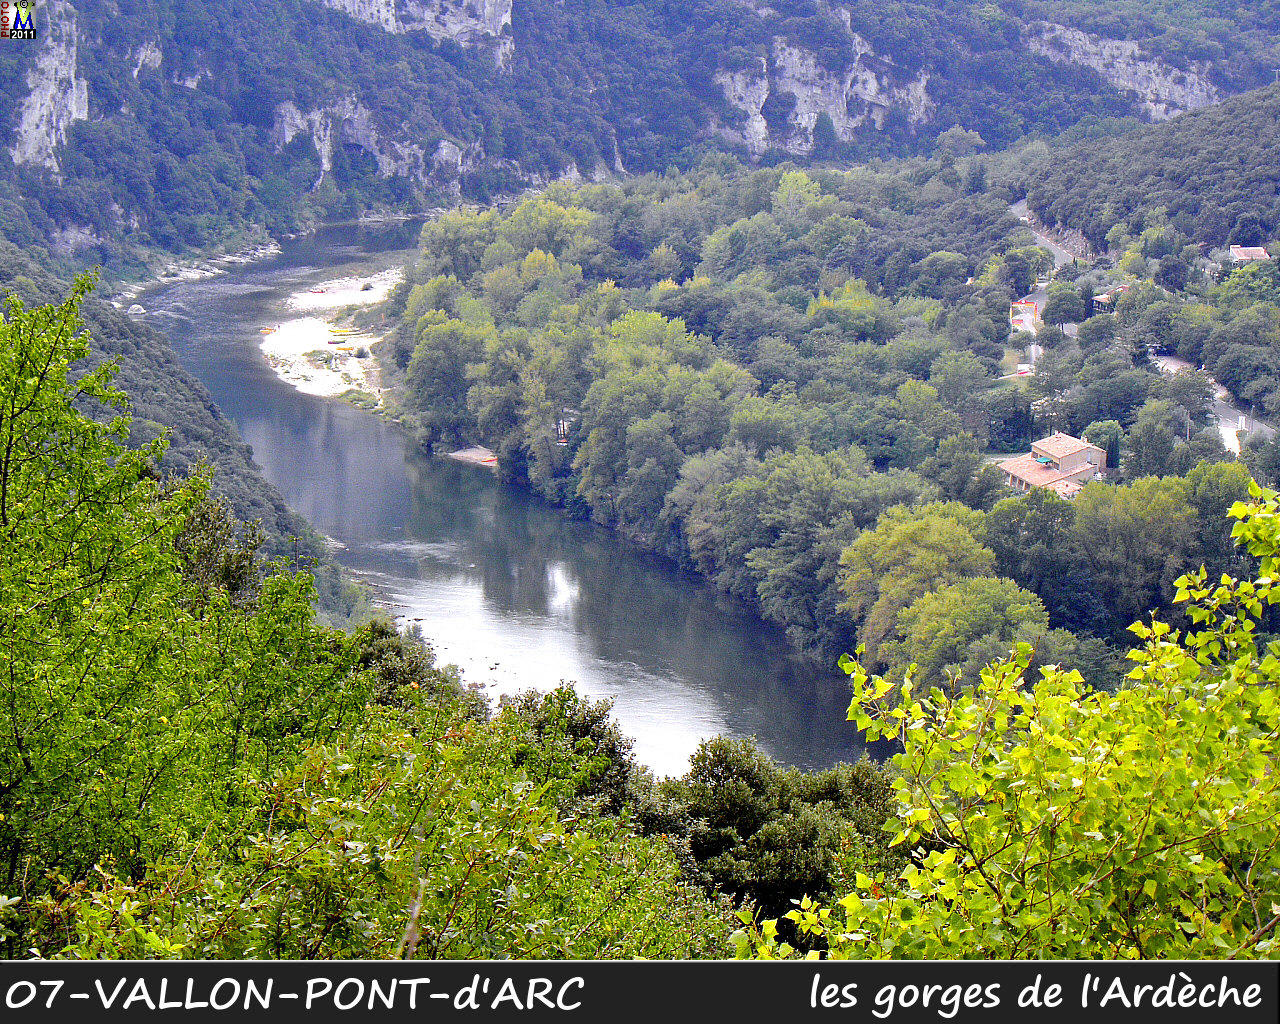 07VALLON-PONT-ARC_gorges_116.jpg